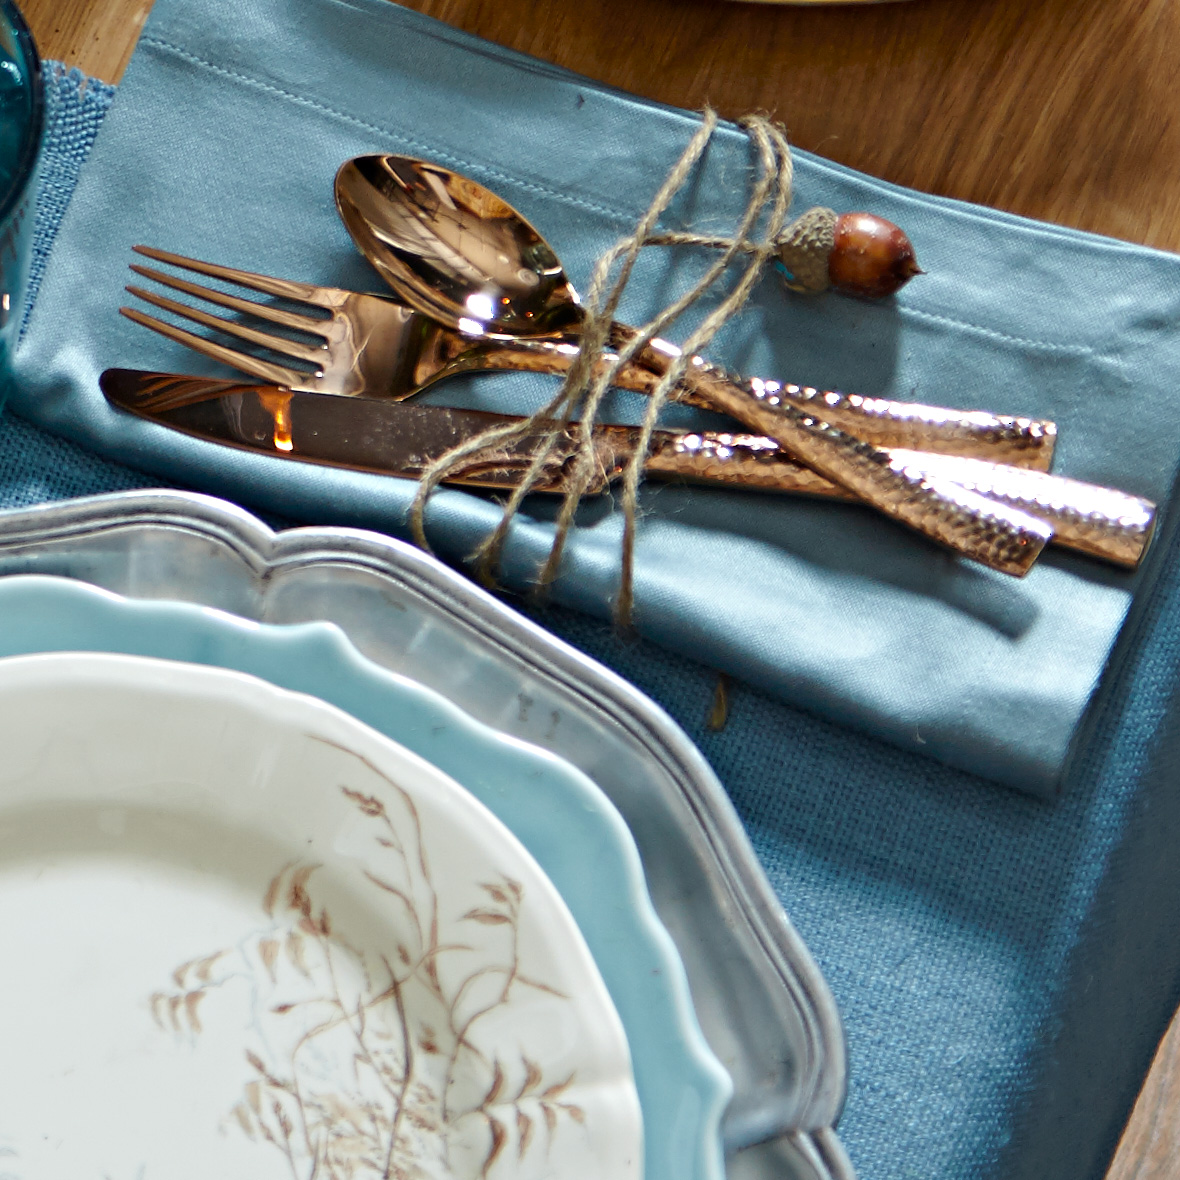 Table setting accents